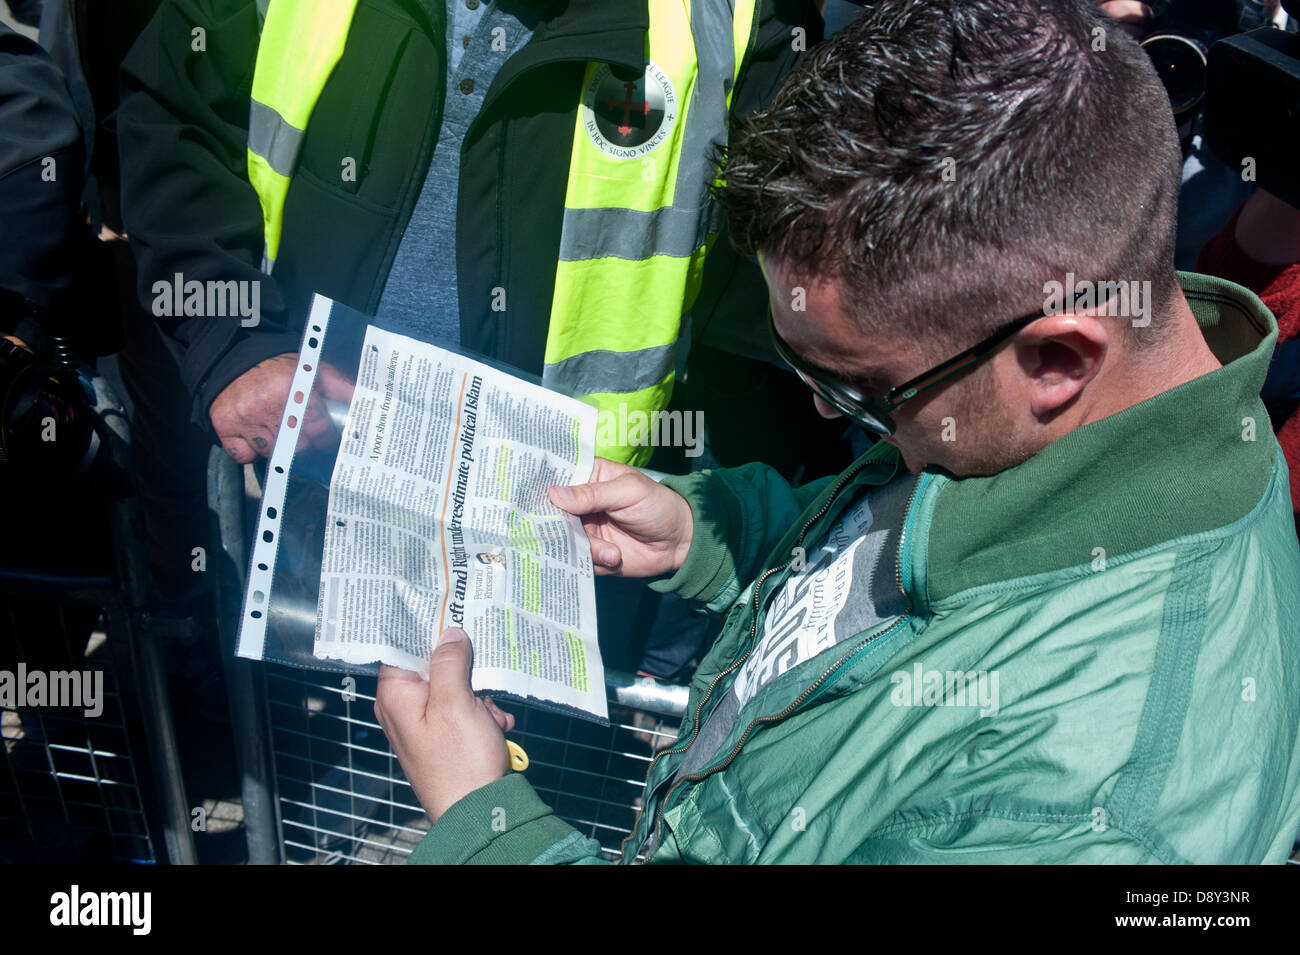 London, UK. 6th June 2013. English Defence League (EDL) leader Tommy Robinson reads an article on the Evening Standard - Stock Image